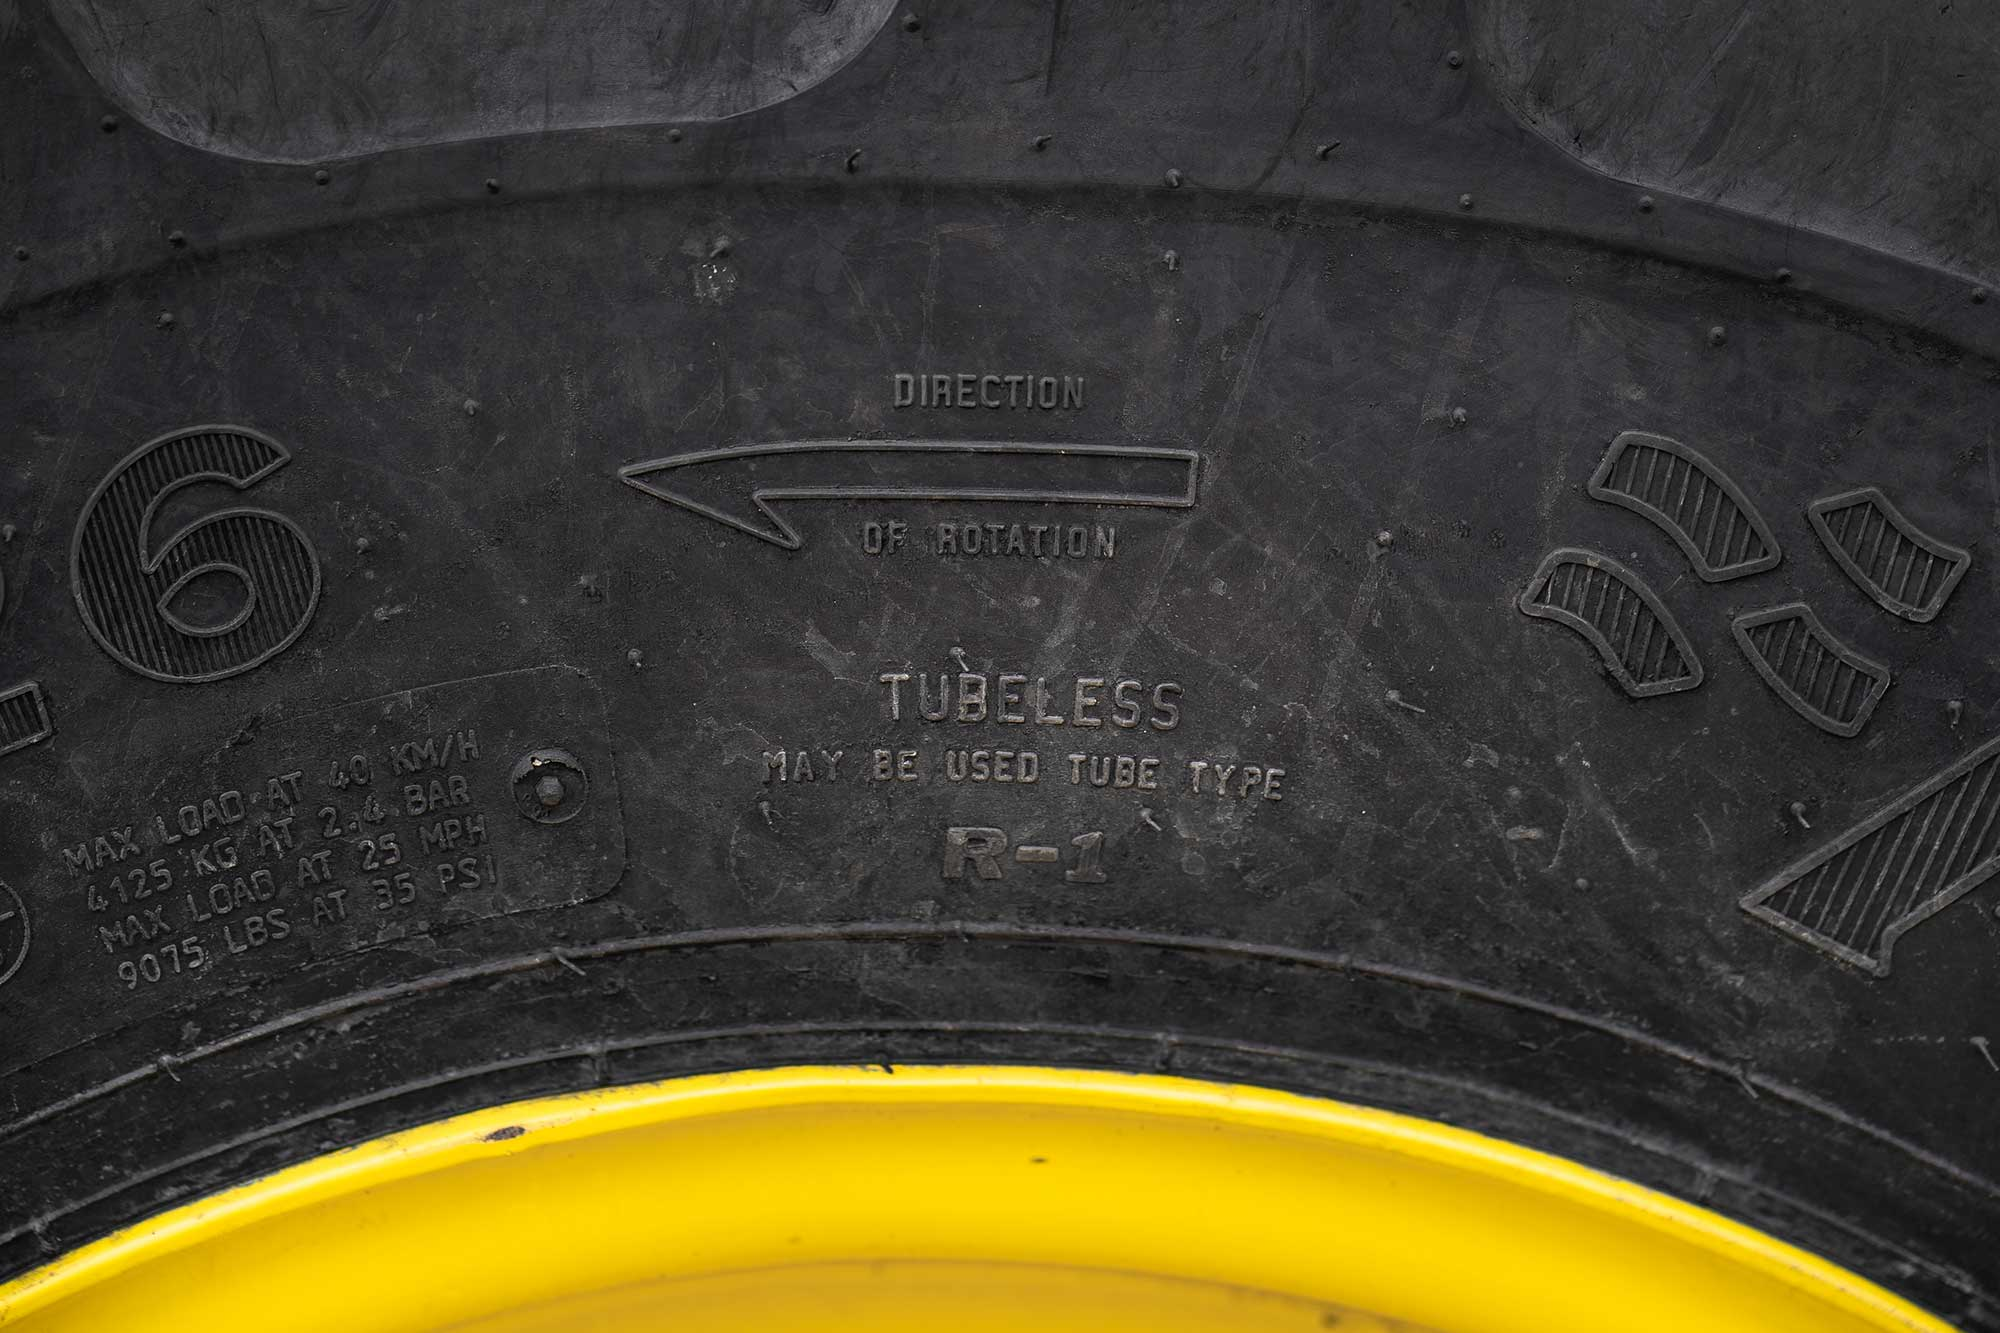 The tractor tire's sidewall tells whether or not the tire can be used without a tube.